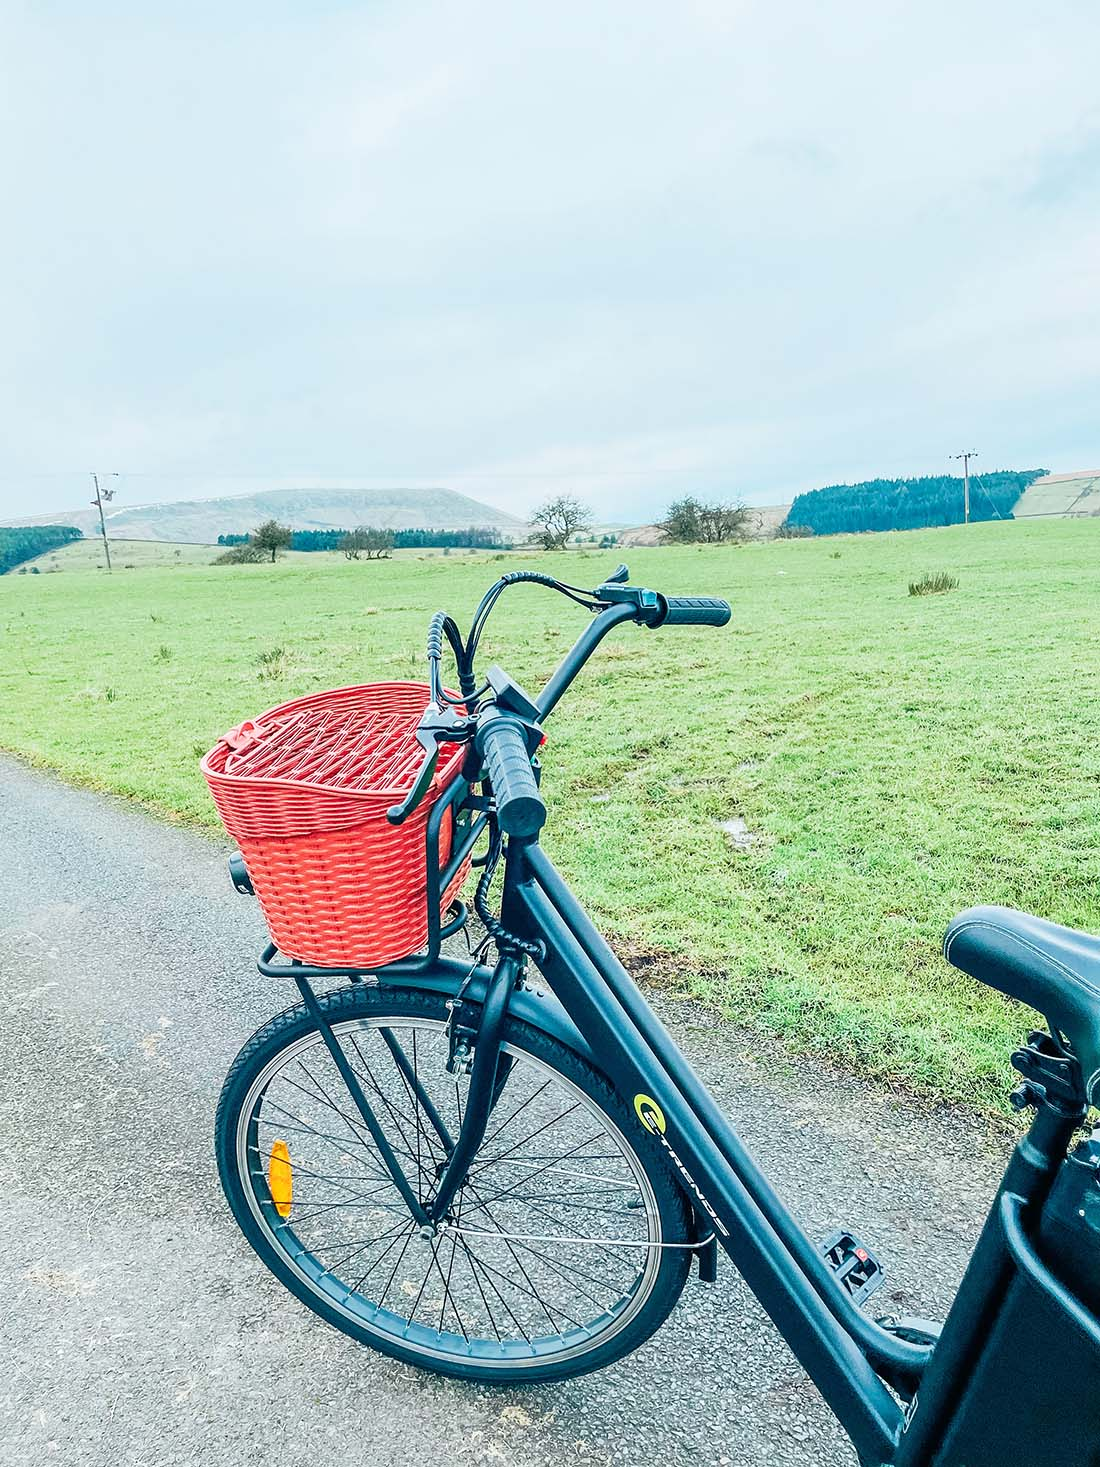 The E-Trends City Electric Bike With A Basket